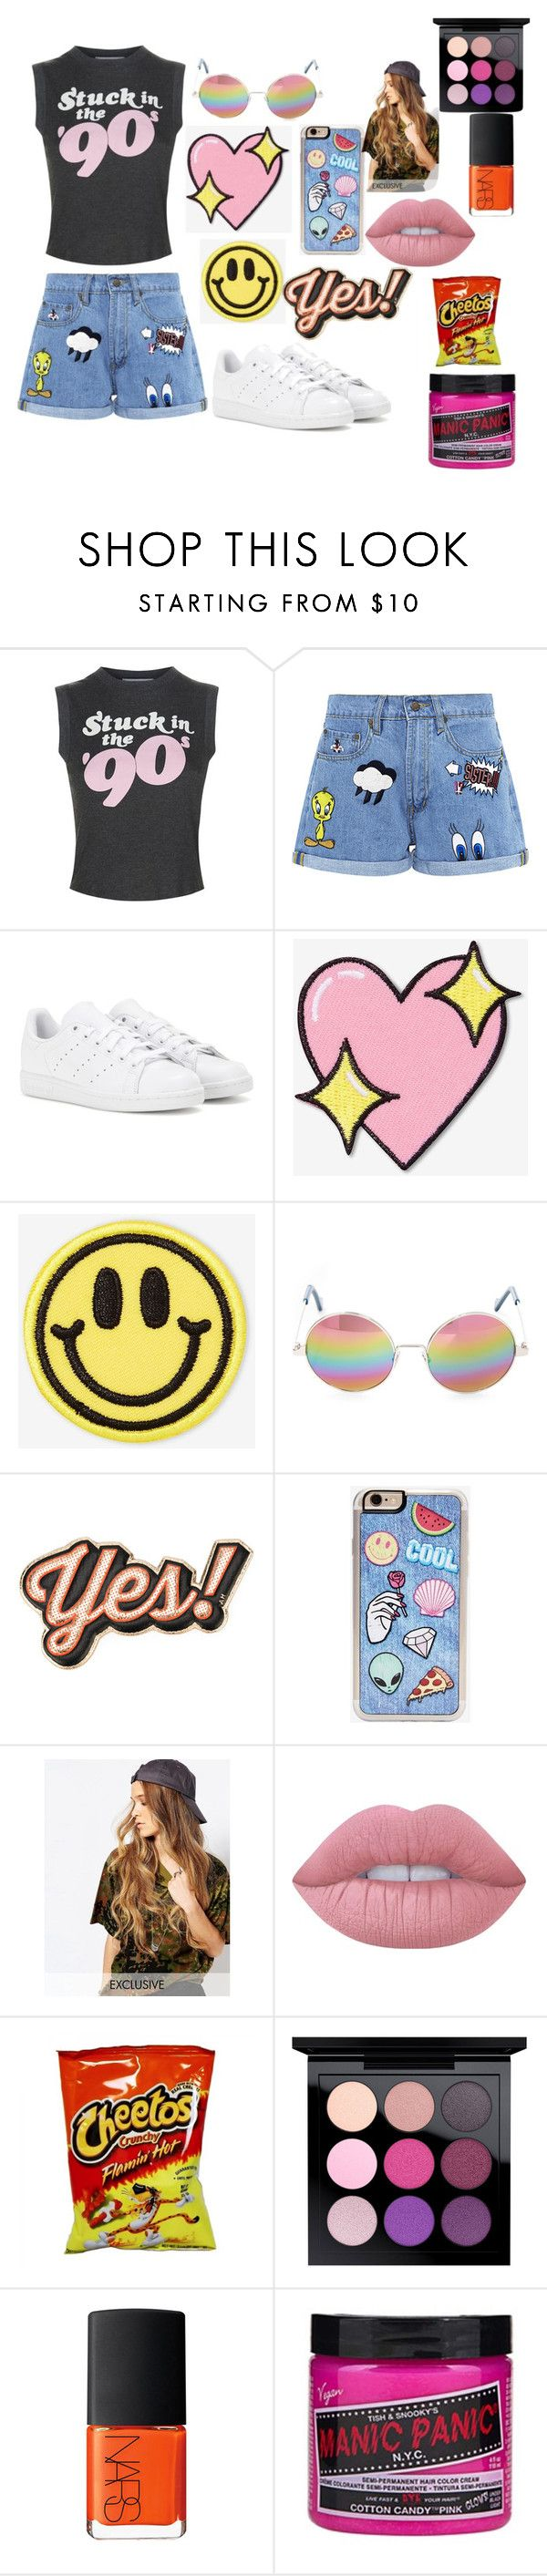 """""""90's kid"""" by infinitelover09 on Polyvore featuring Wildfox, Paul & Joe Sister, adidas, Big Bud Press, Cutler and Gross, Anya Hindmarch, Zero Gravity, Reclaimed Vintage, Lime Crime and MAC Cosmetics"""